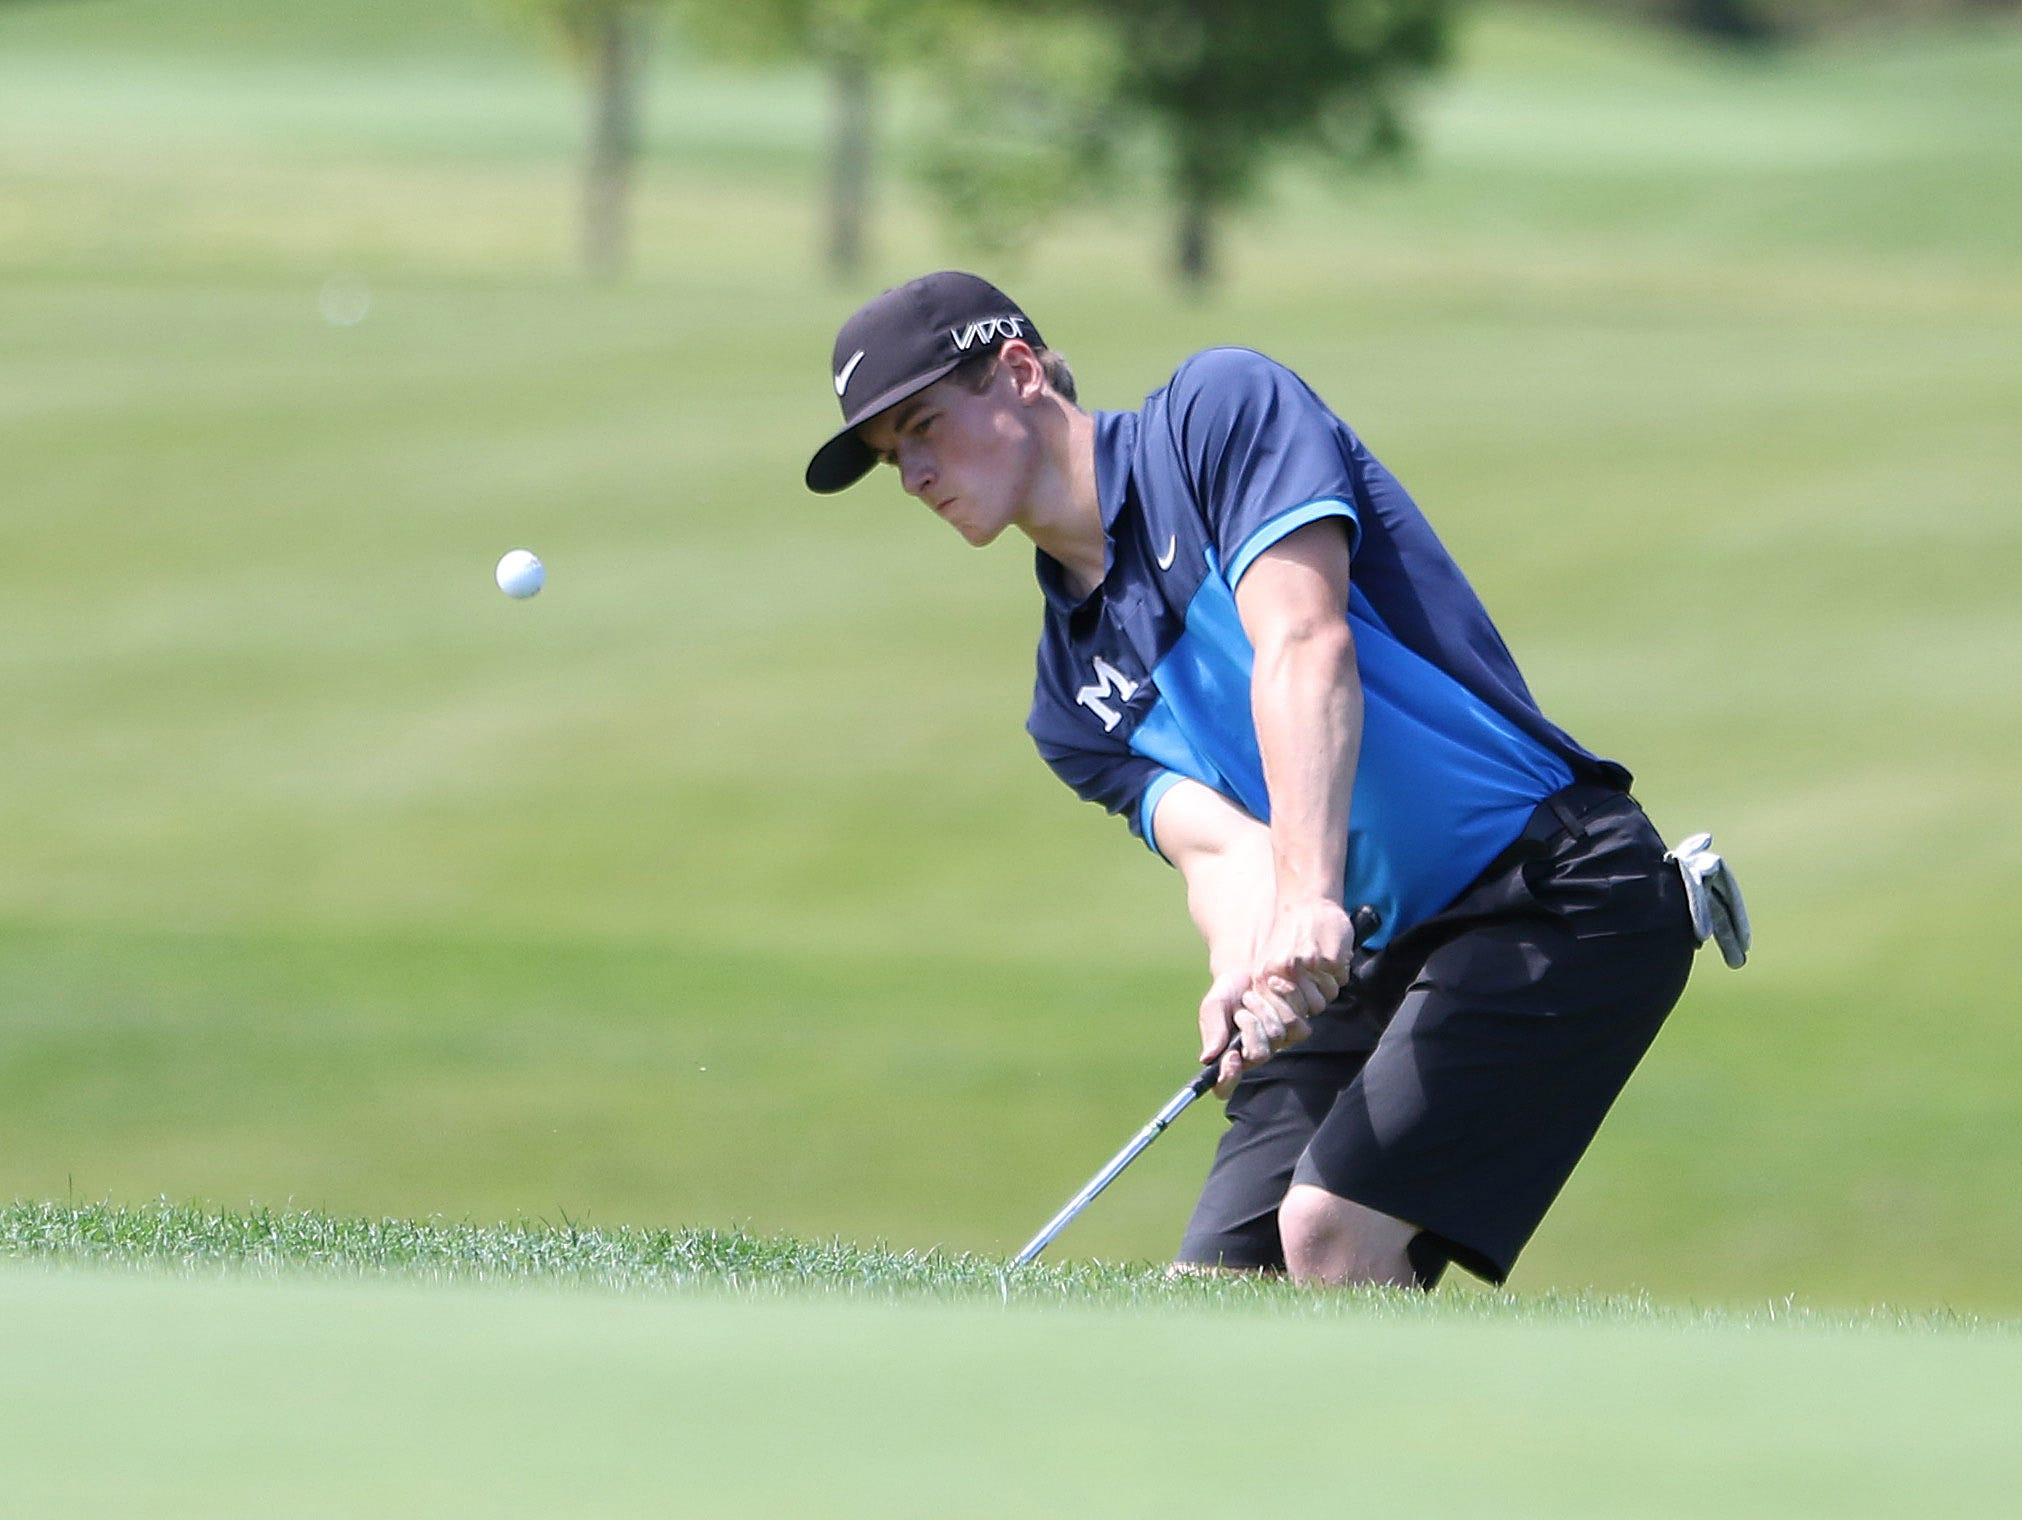 McNary's Brady Sparks competes during the first day of the Greater Valley Conference District Golf Tournament on Monday, May 2, 2016, at Trysting Tree Golf Club in Corvallis, Ore.